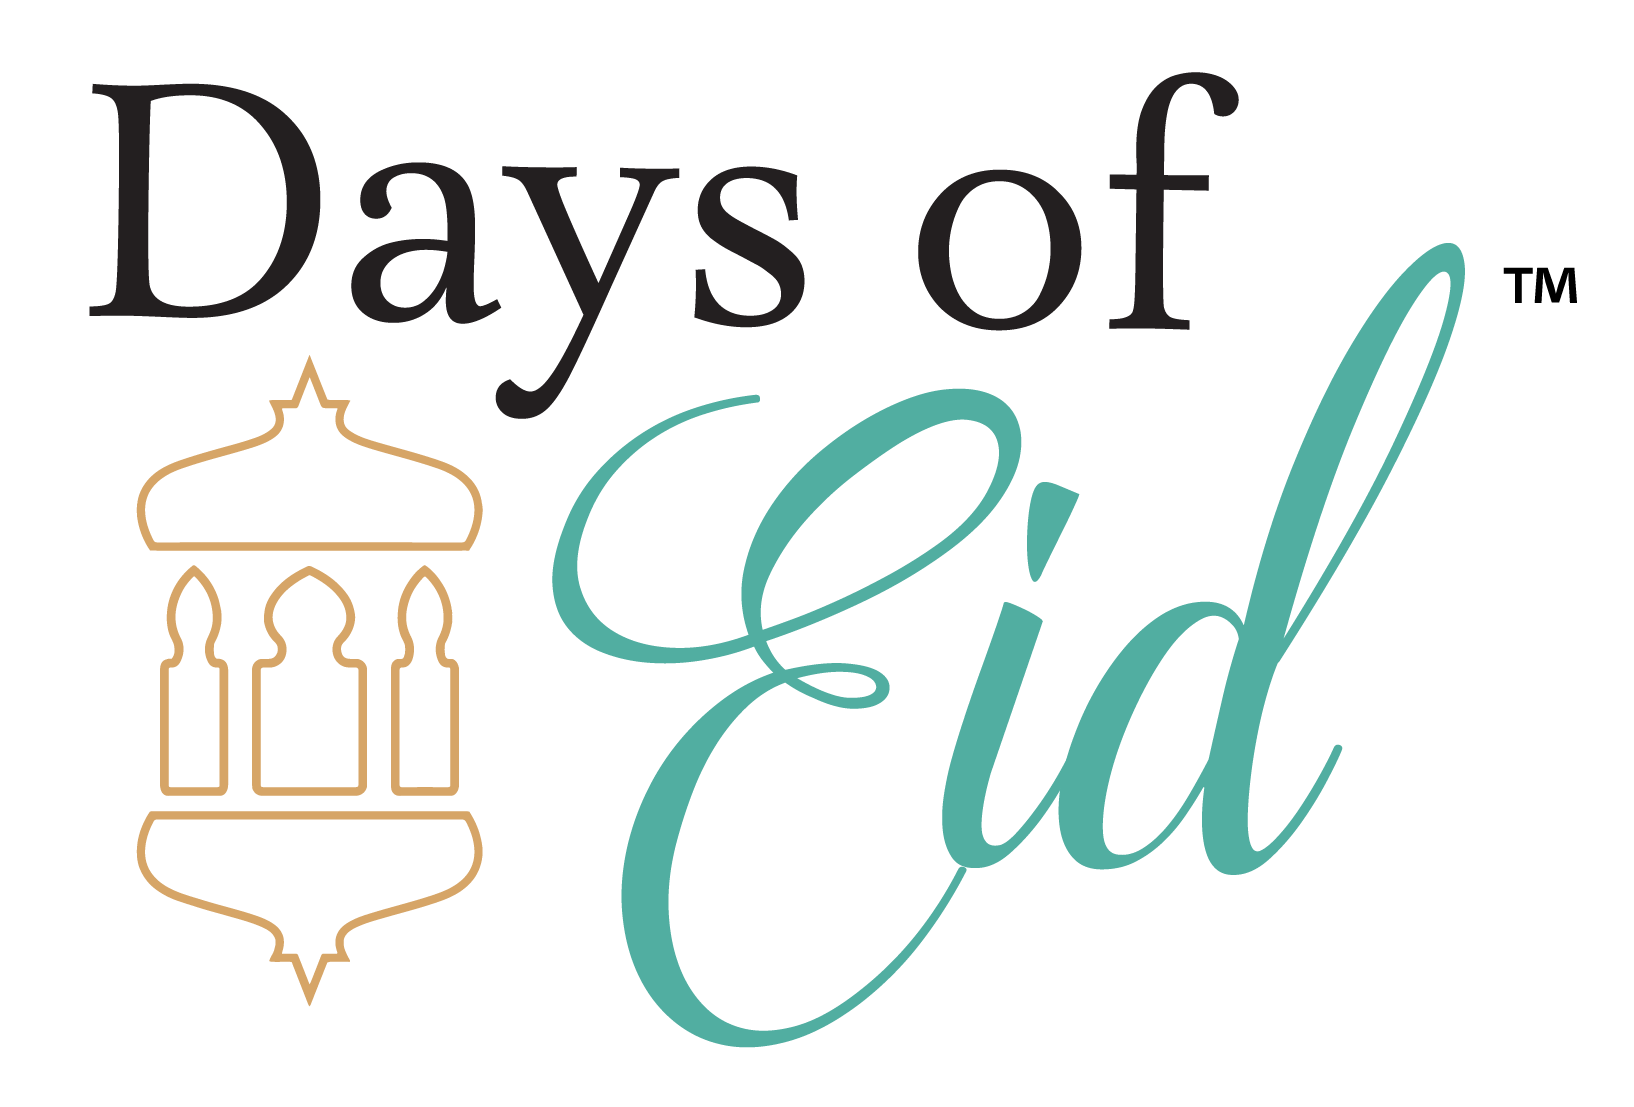 DAYS-OF-EID-LOGO-TRADEMARK-02.png